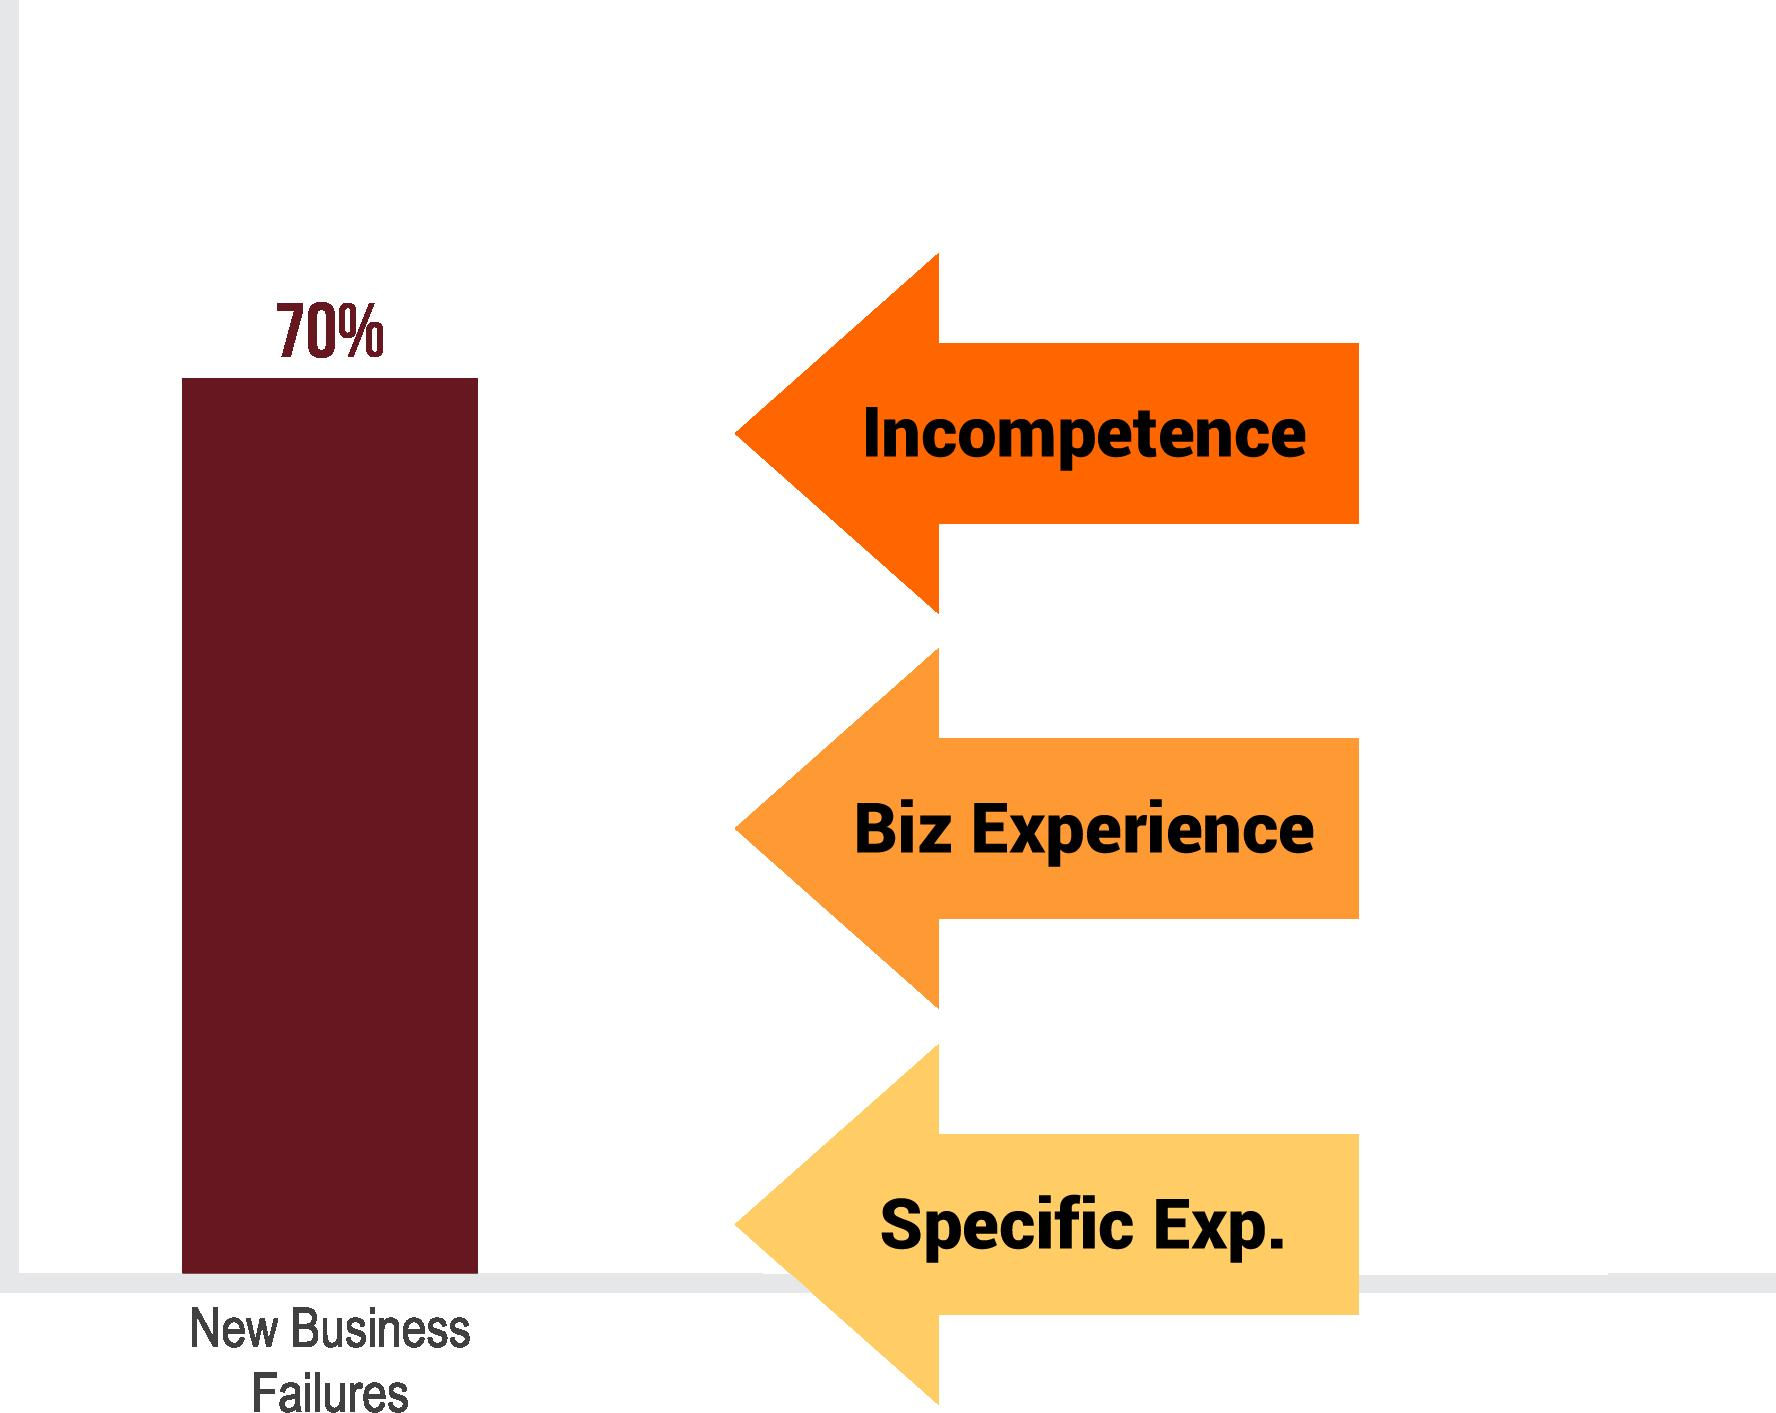 70% of businesses fail due to incompetence, lack of industry knowledge, or lack of business knowledge